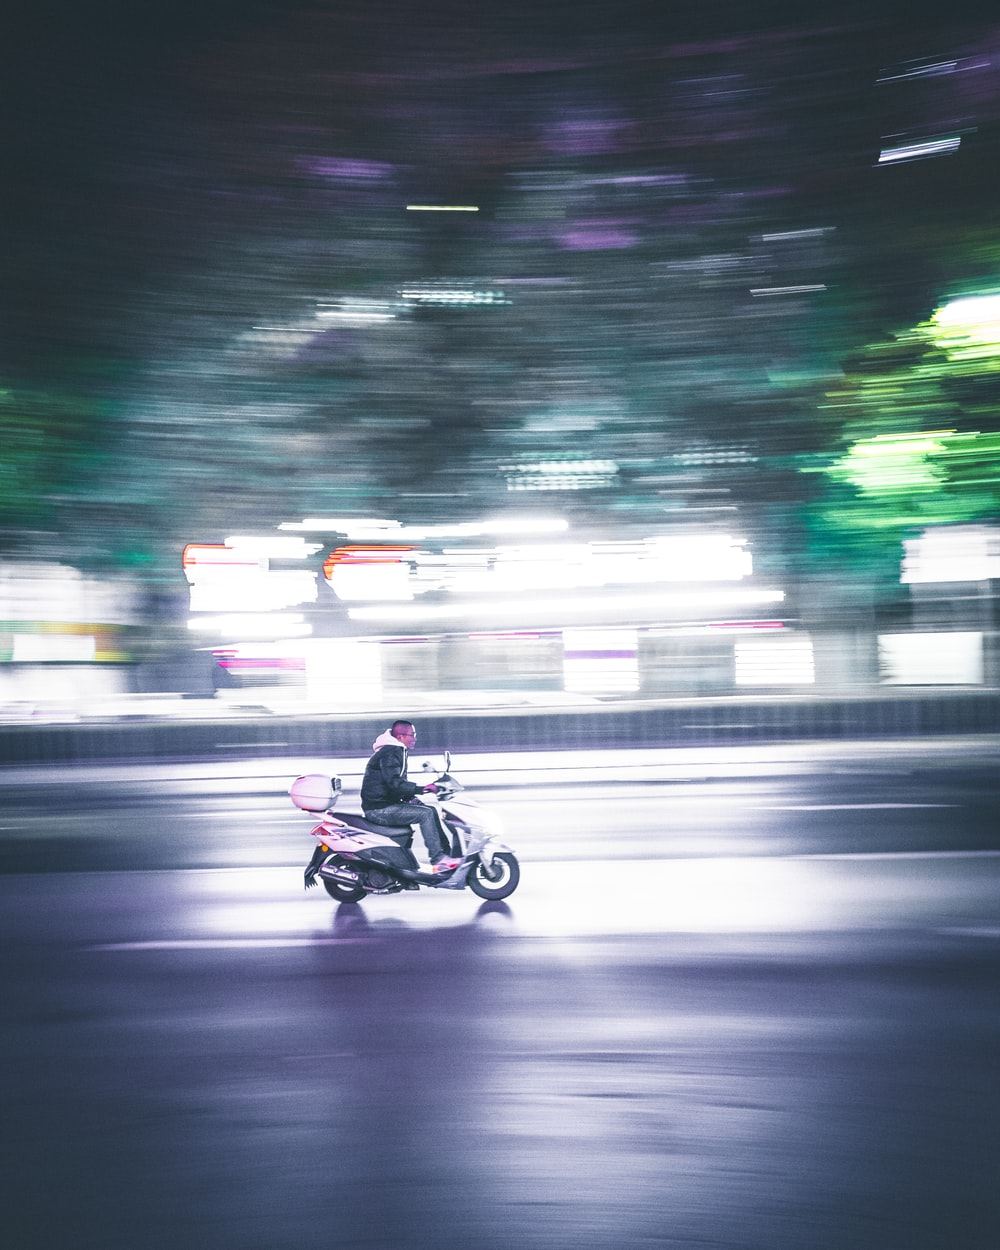 person riding motor scooter